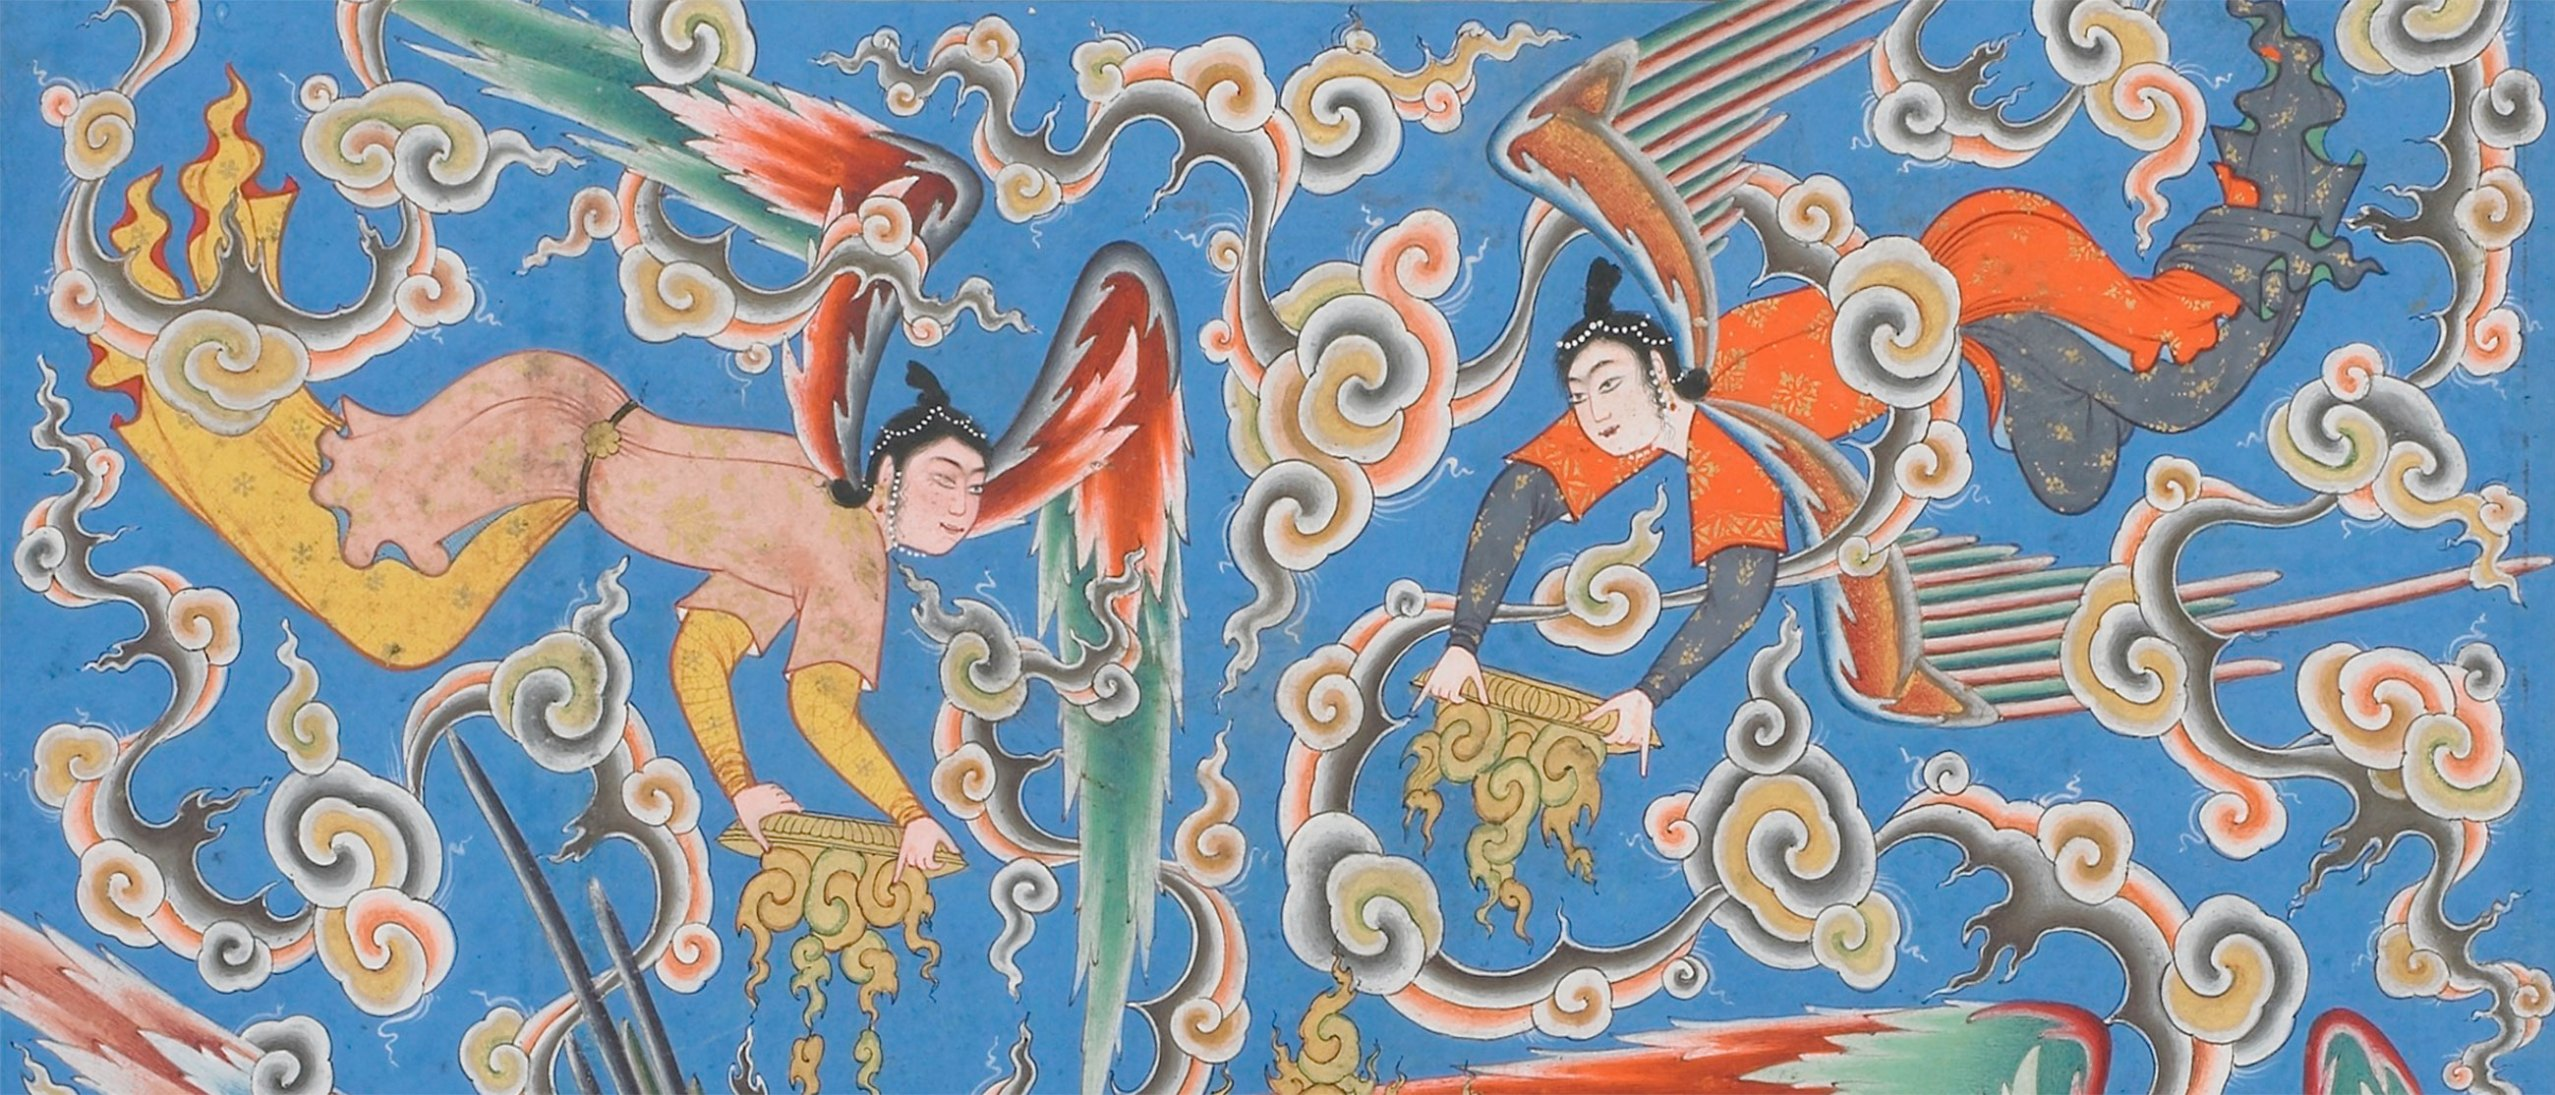 Detail of folio from the Haftawrang: two angels in brightly colored robes among intricately swirling clouds, holding flaming golden disks.